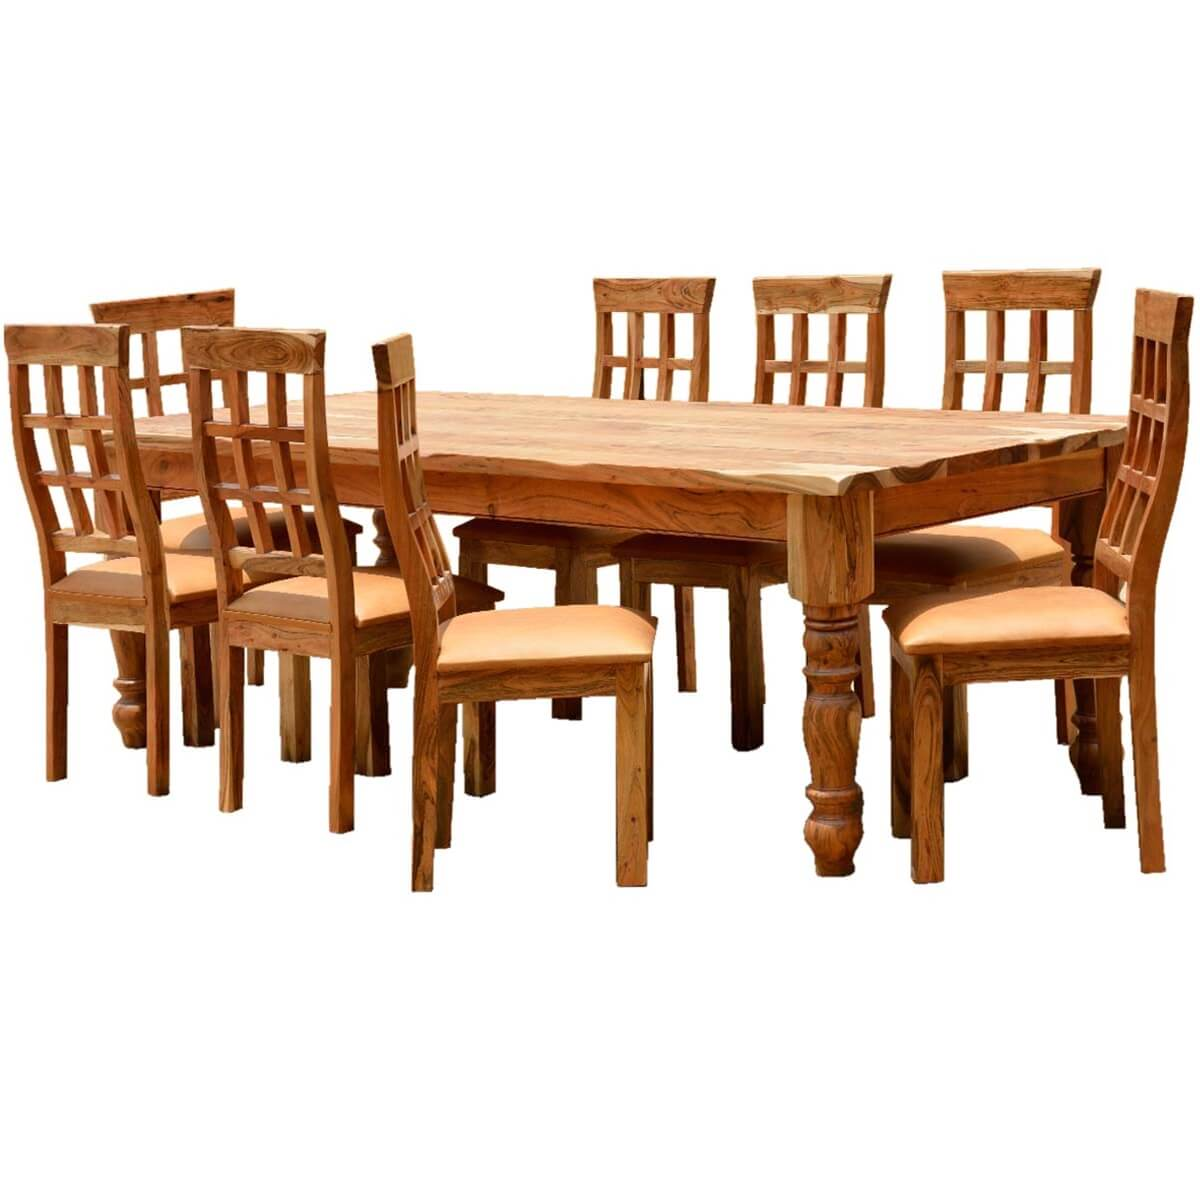 Discount Dining Room Table Sets Rustic Furniture Farmhouse Solid Wood Dining Table Chair Set